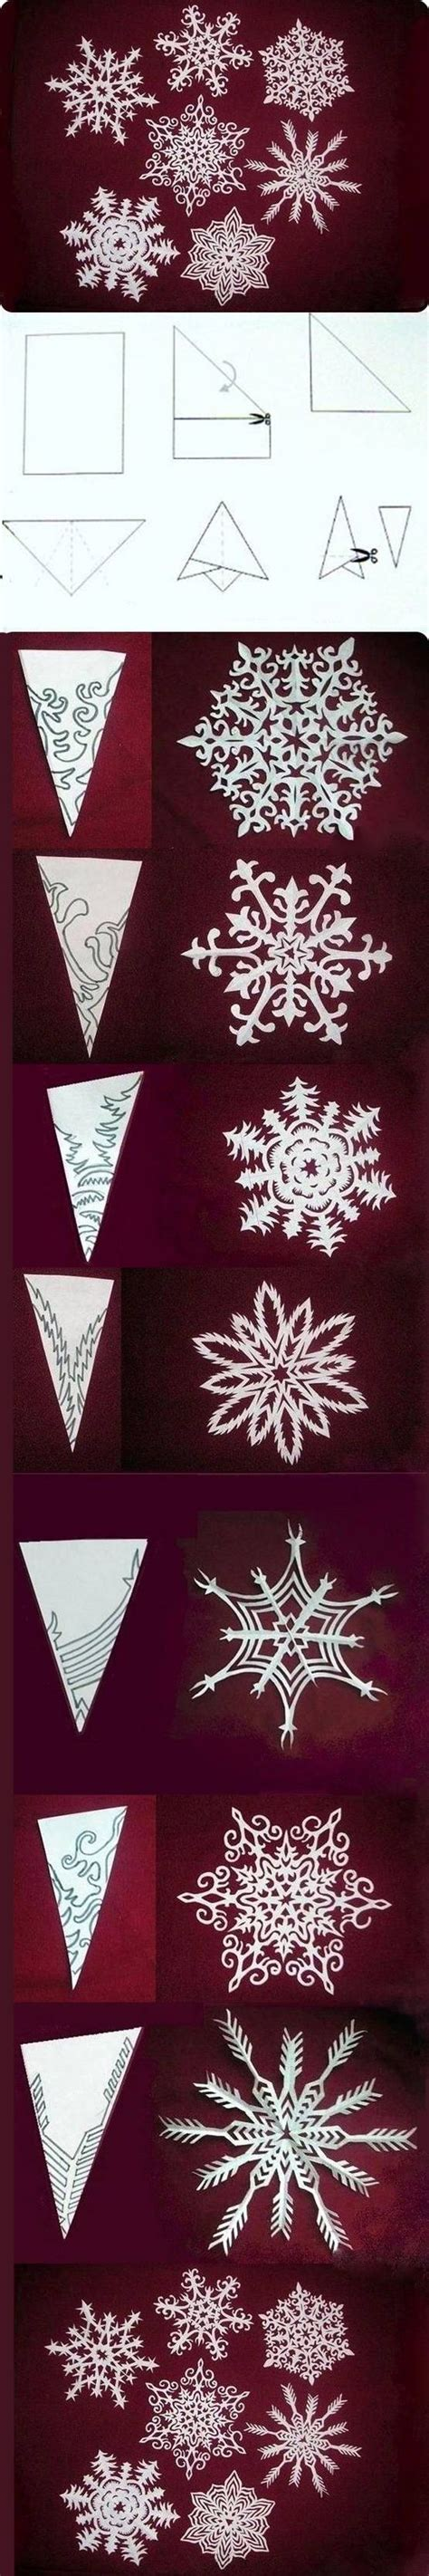 How To Make Pretty Paper Snowflakes - paper snowflake patterns paper snowflake paper snowflake